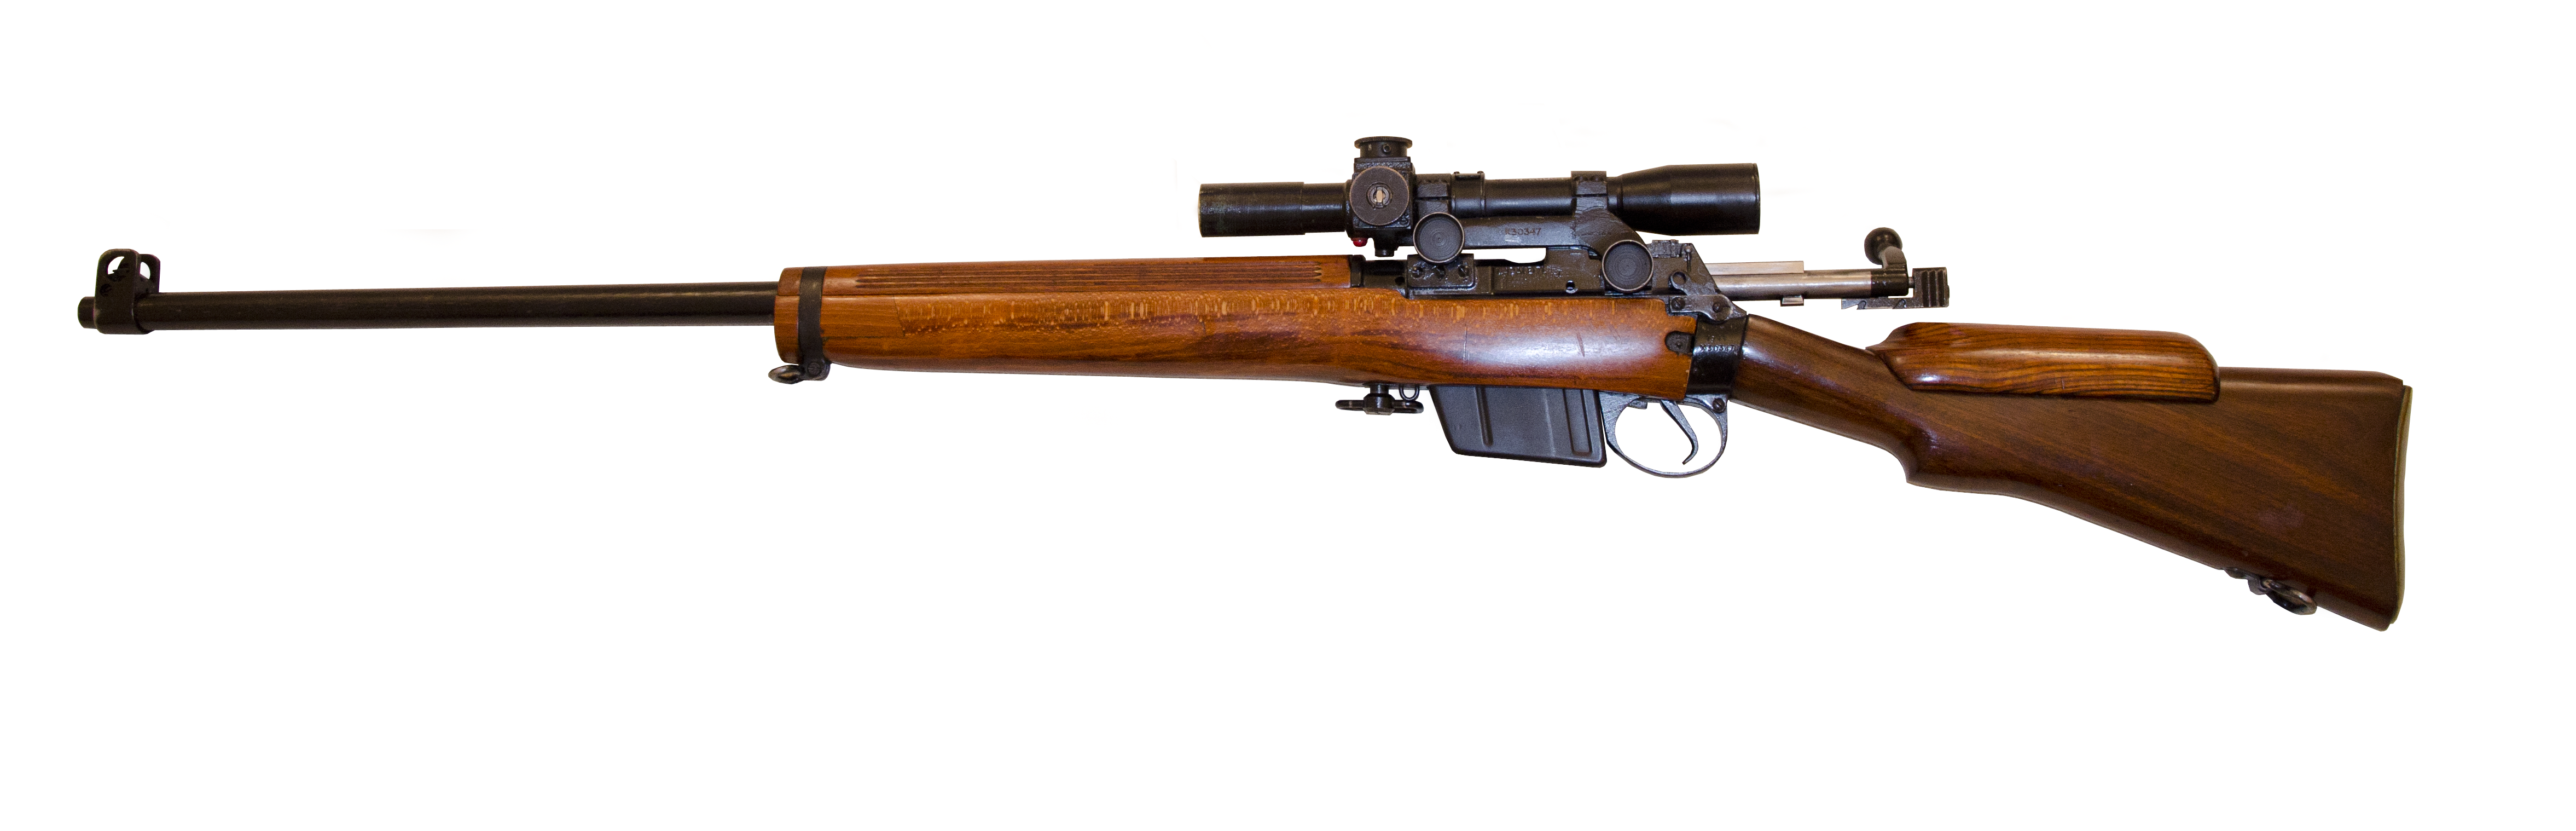 Lee–Enfield | Military Wiki | FANDOM powered by Wikia